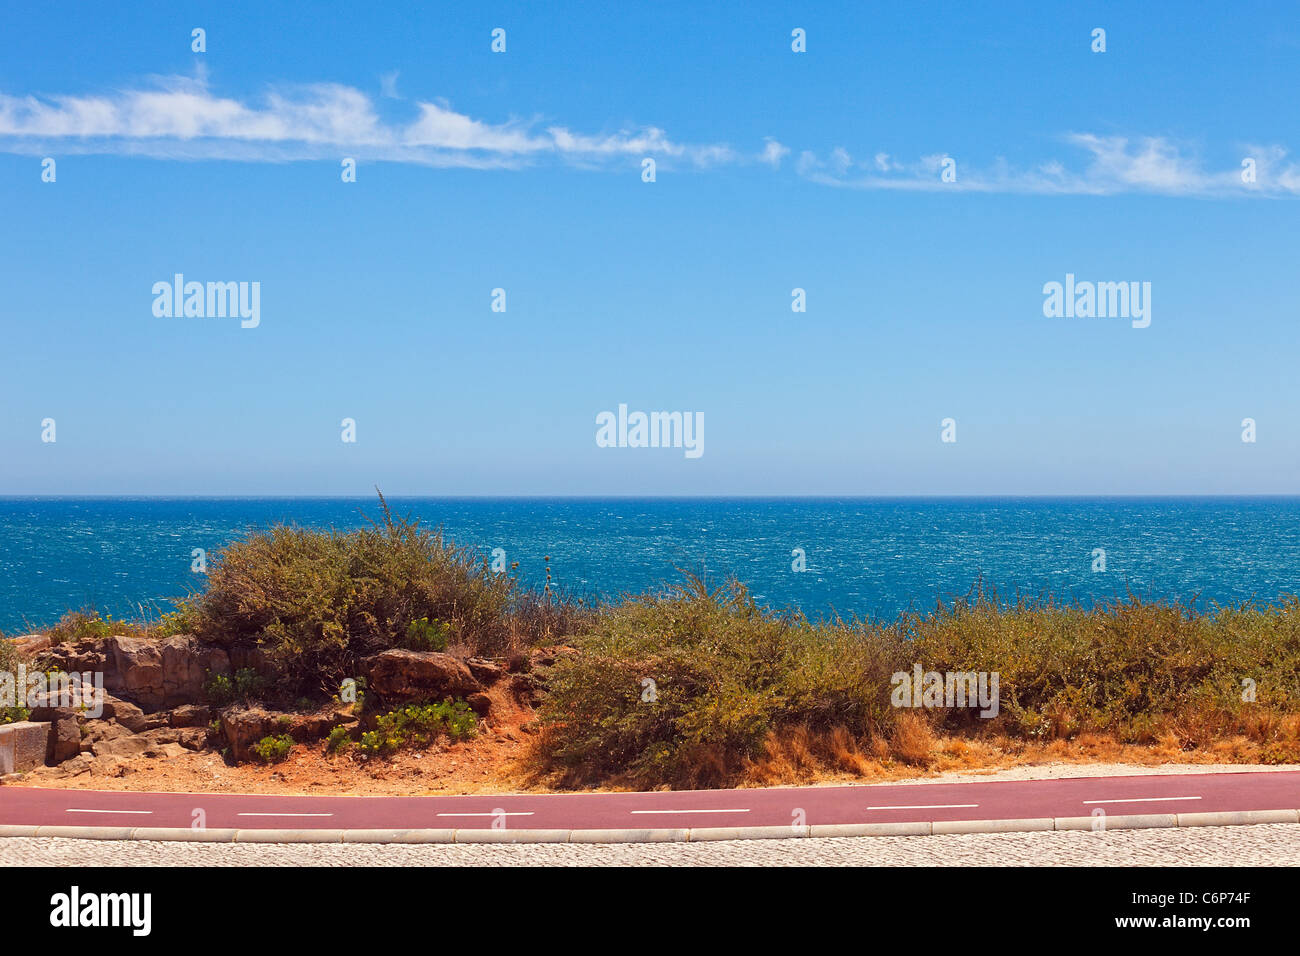 Cycleway on the Atlantic seaboard. Landscape with smooth ocean and blue sky. Stock Photo